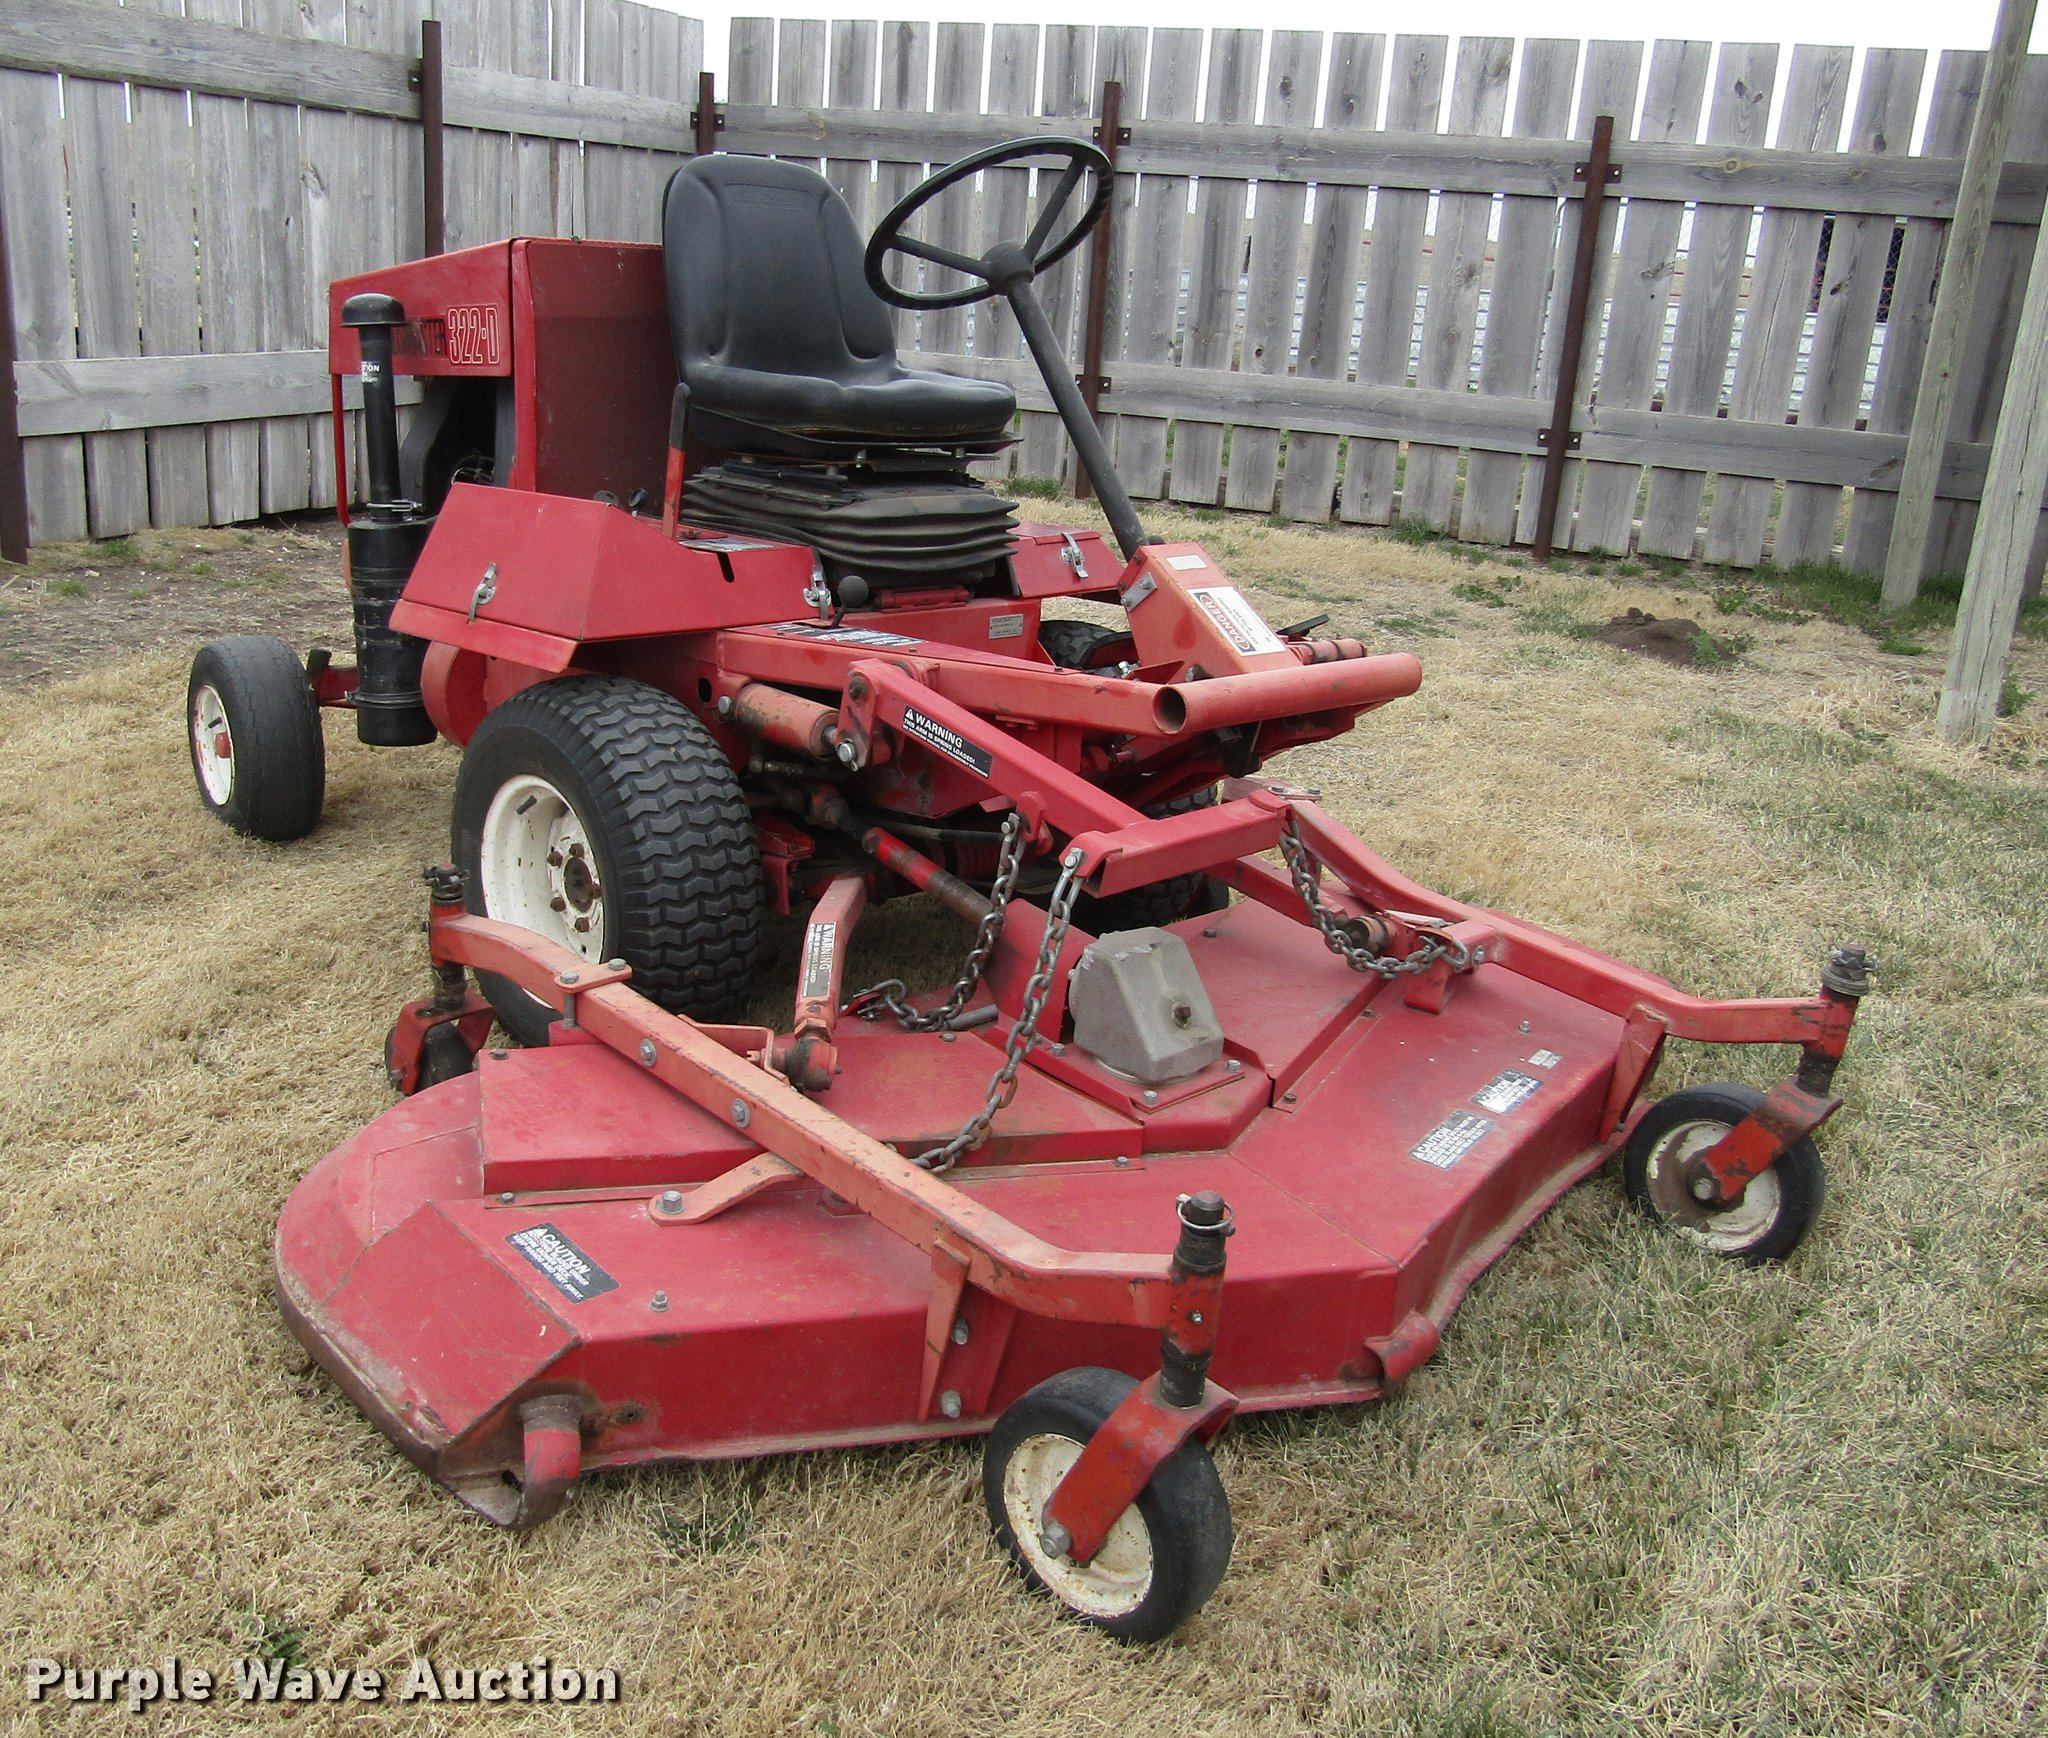 Toro Groundmaster 322D lawn mower | Item DD8764 | SOLD! May